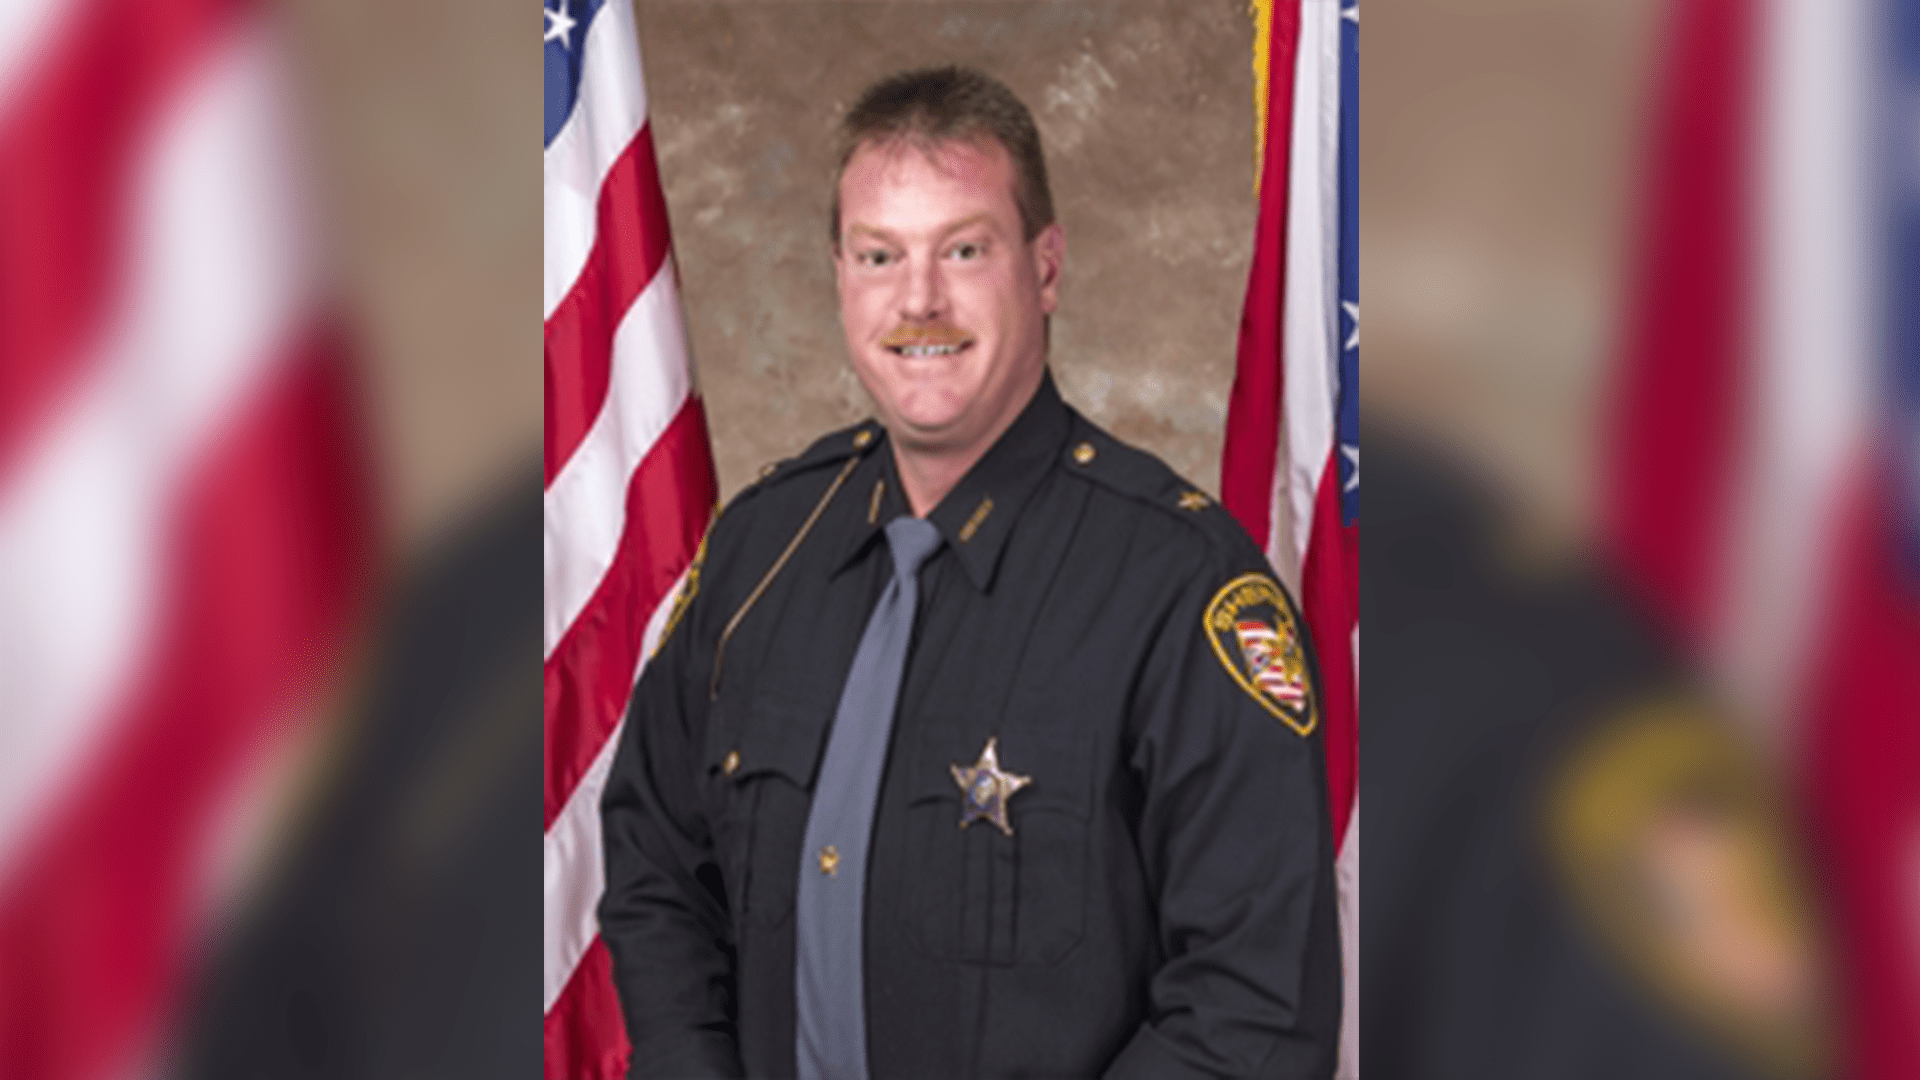 pike county sheriff charles reader special prosecutor_1544814383506.png-873772846.jpg